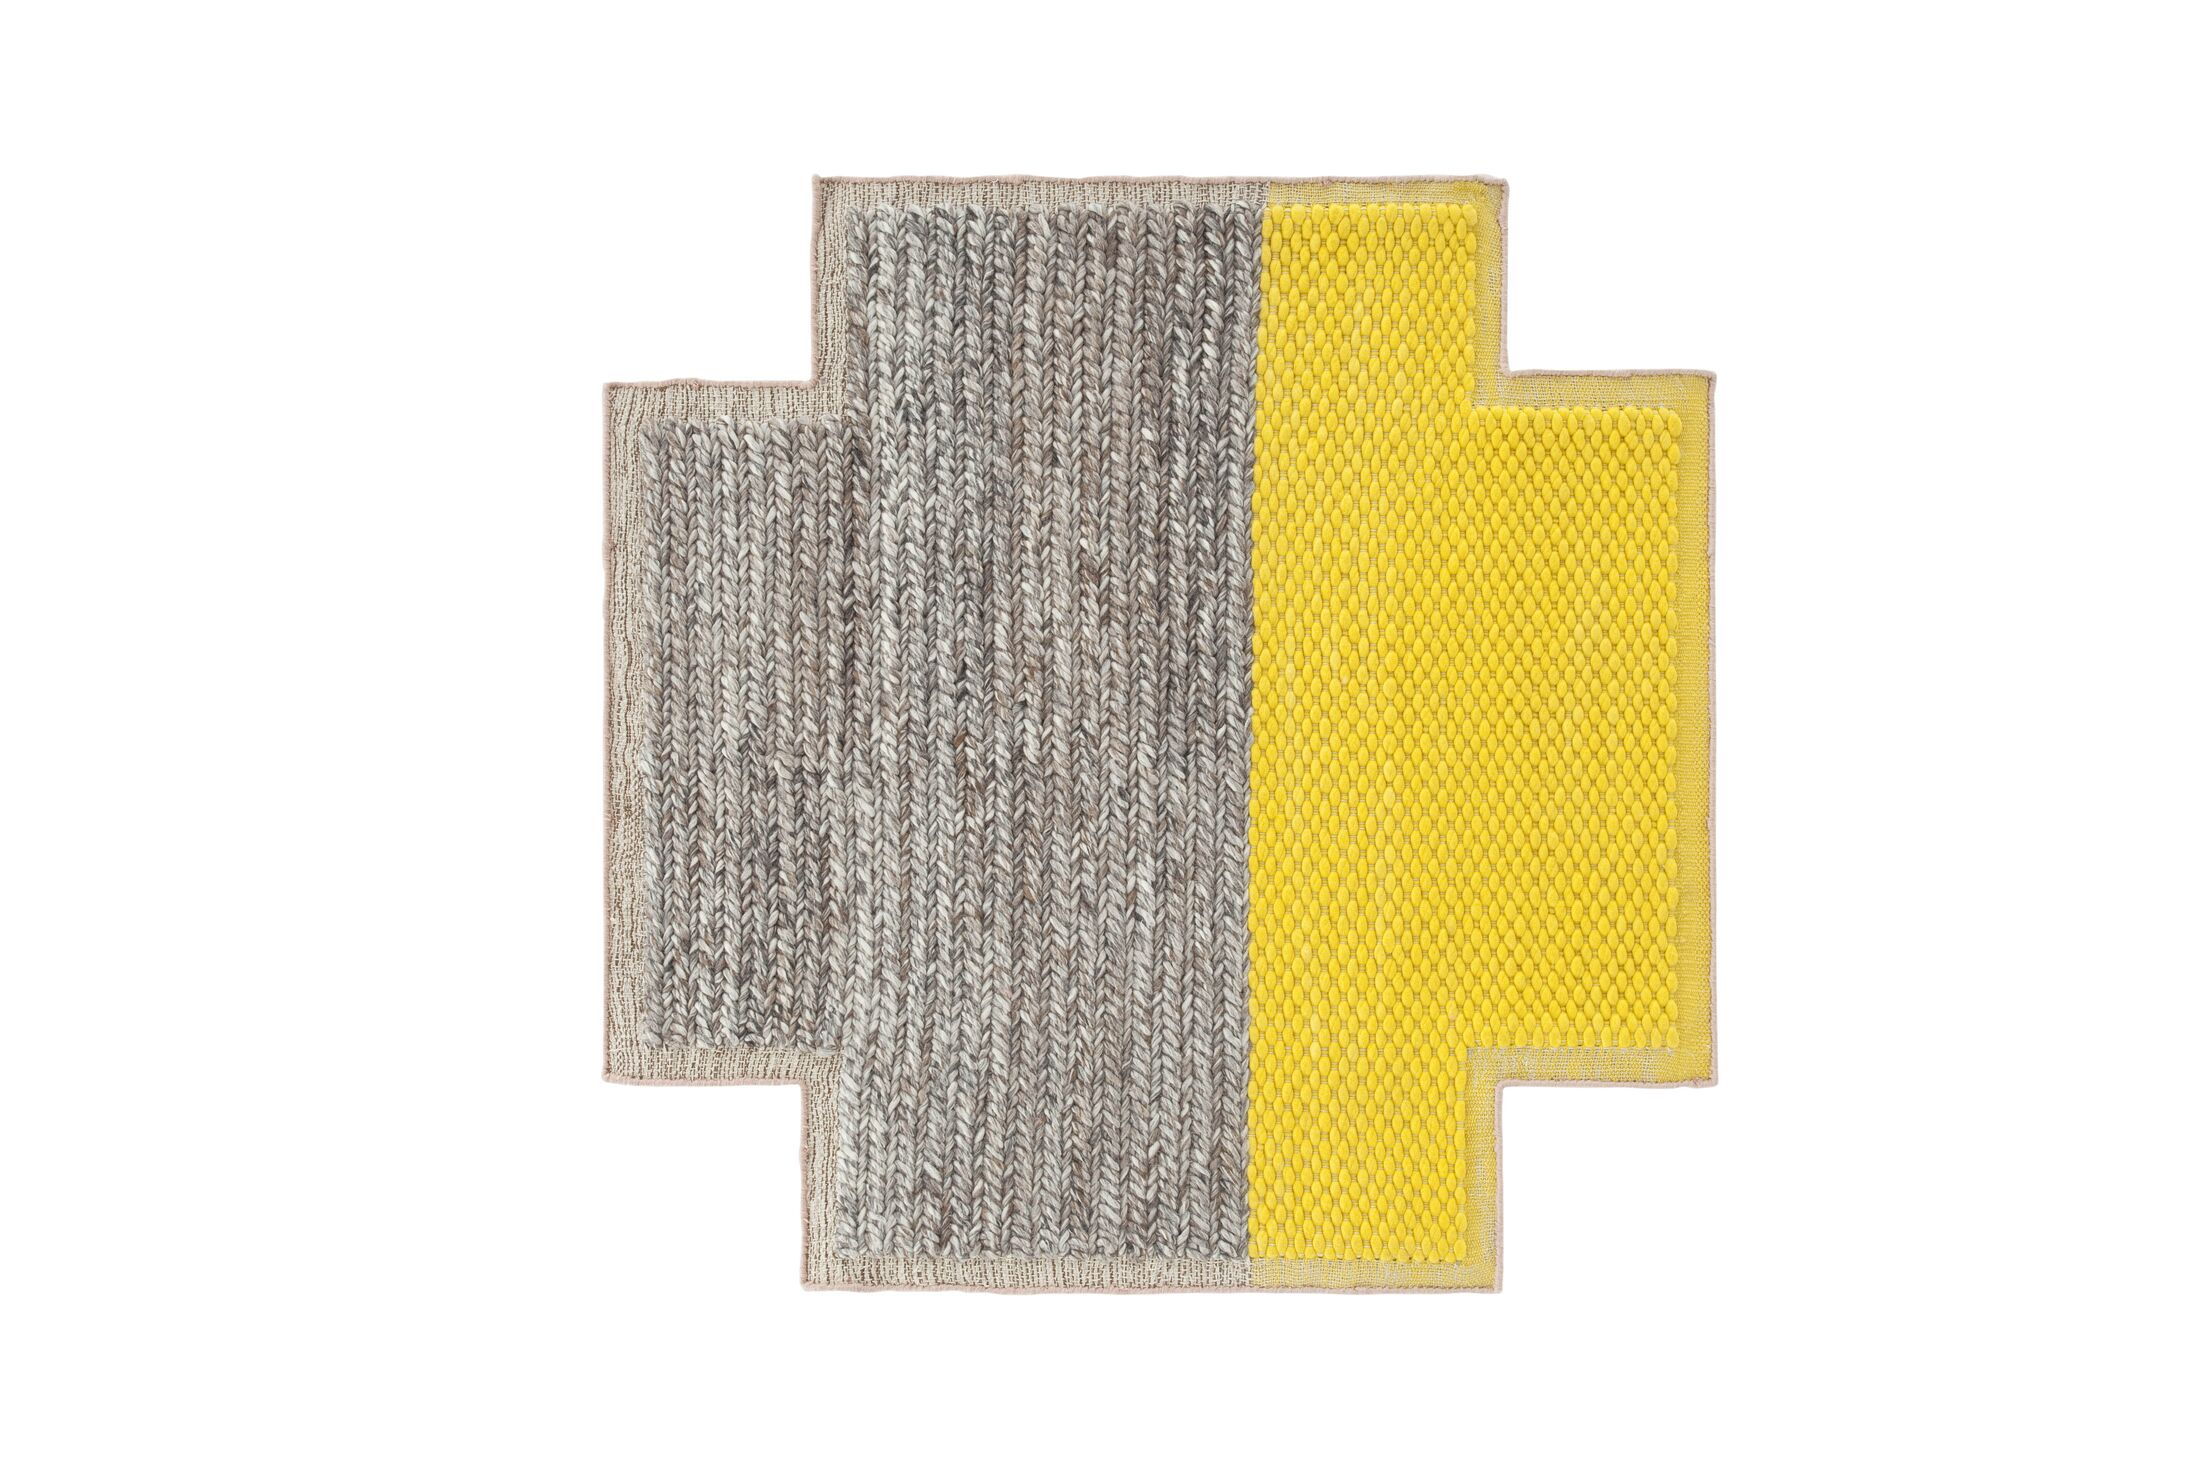 Mangas Space Plait Yellow Area Rug Rug Size: Square 8'6